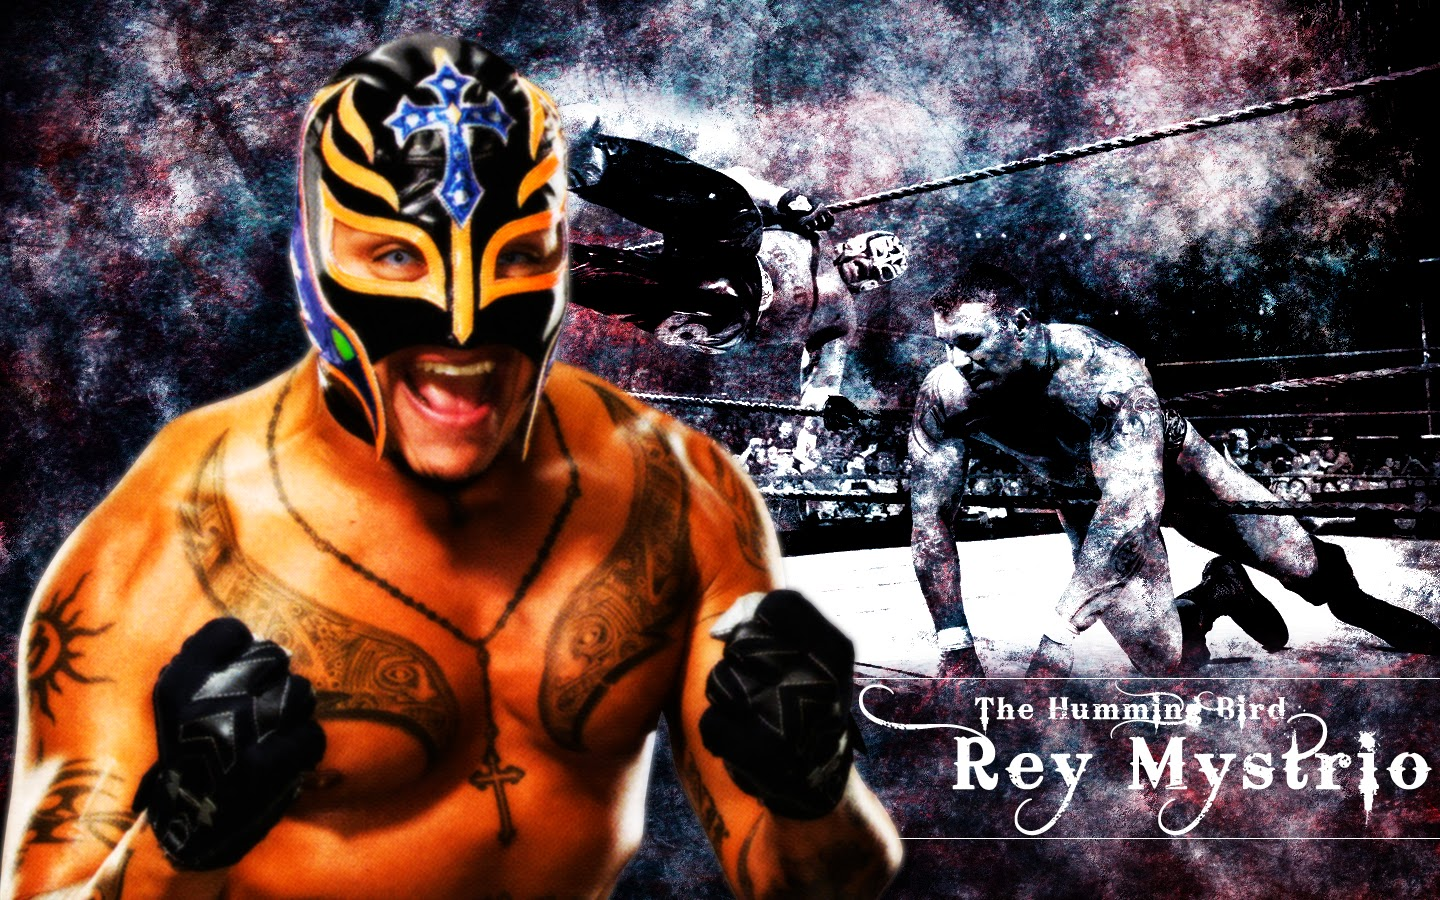 Lucha Libre Rey Misterio Rey Mysterio 619 New Hd Wallpapers Wrestling Wallpapers